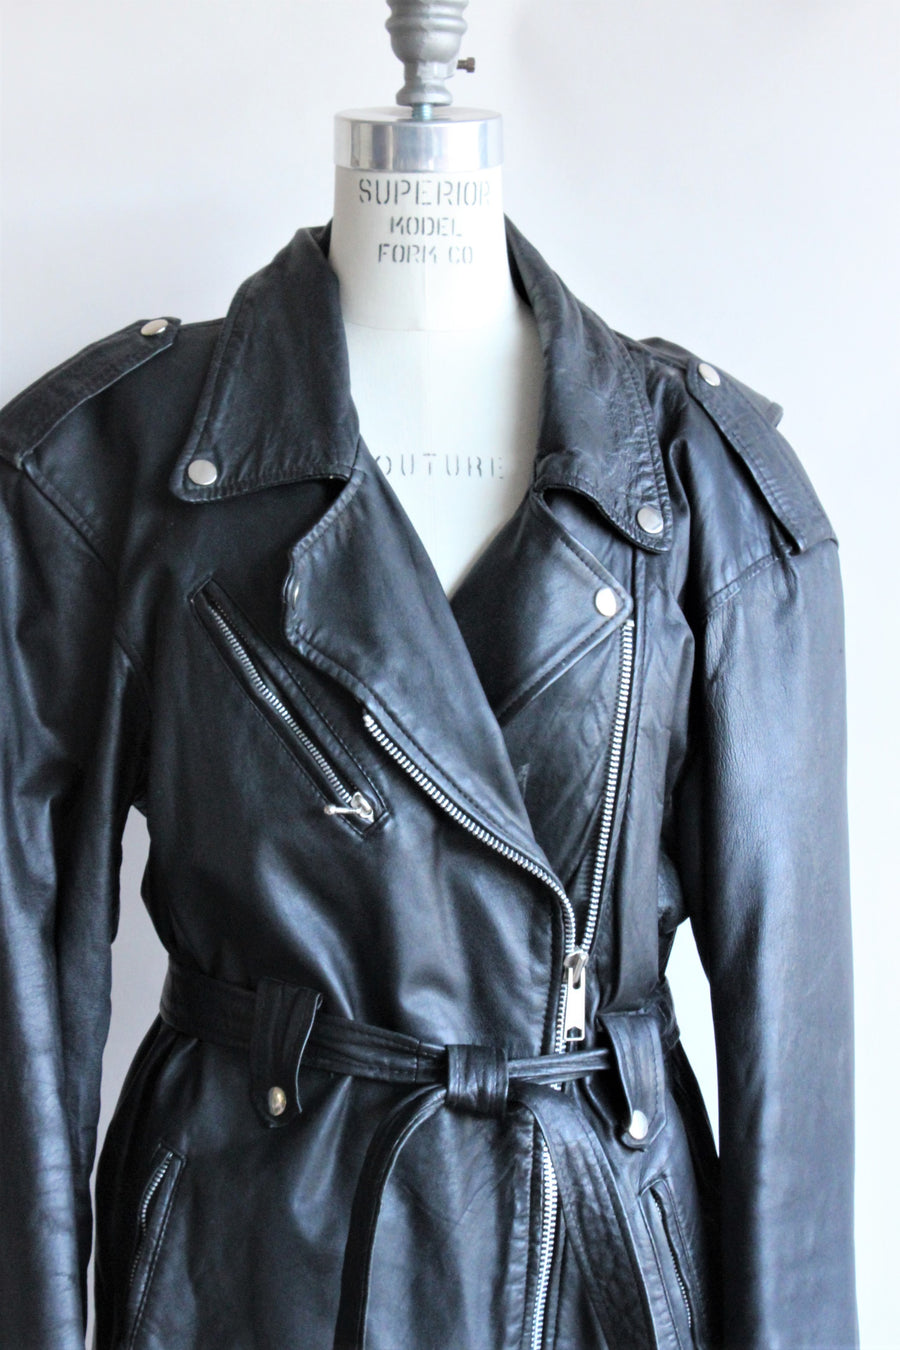 Vintage 1990s Black Leather Biker Jacket